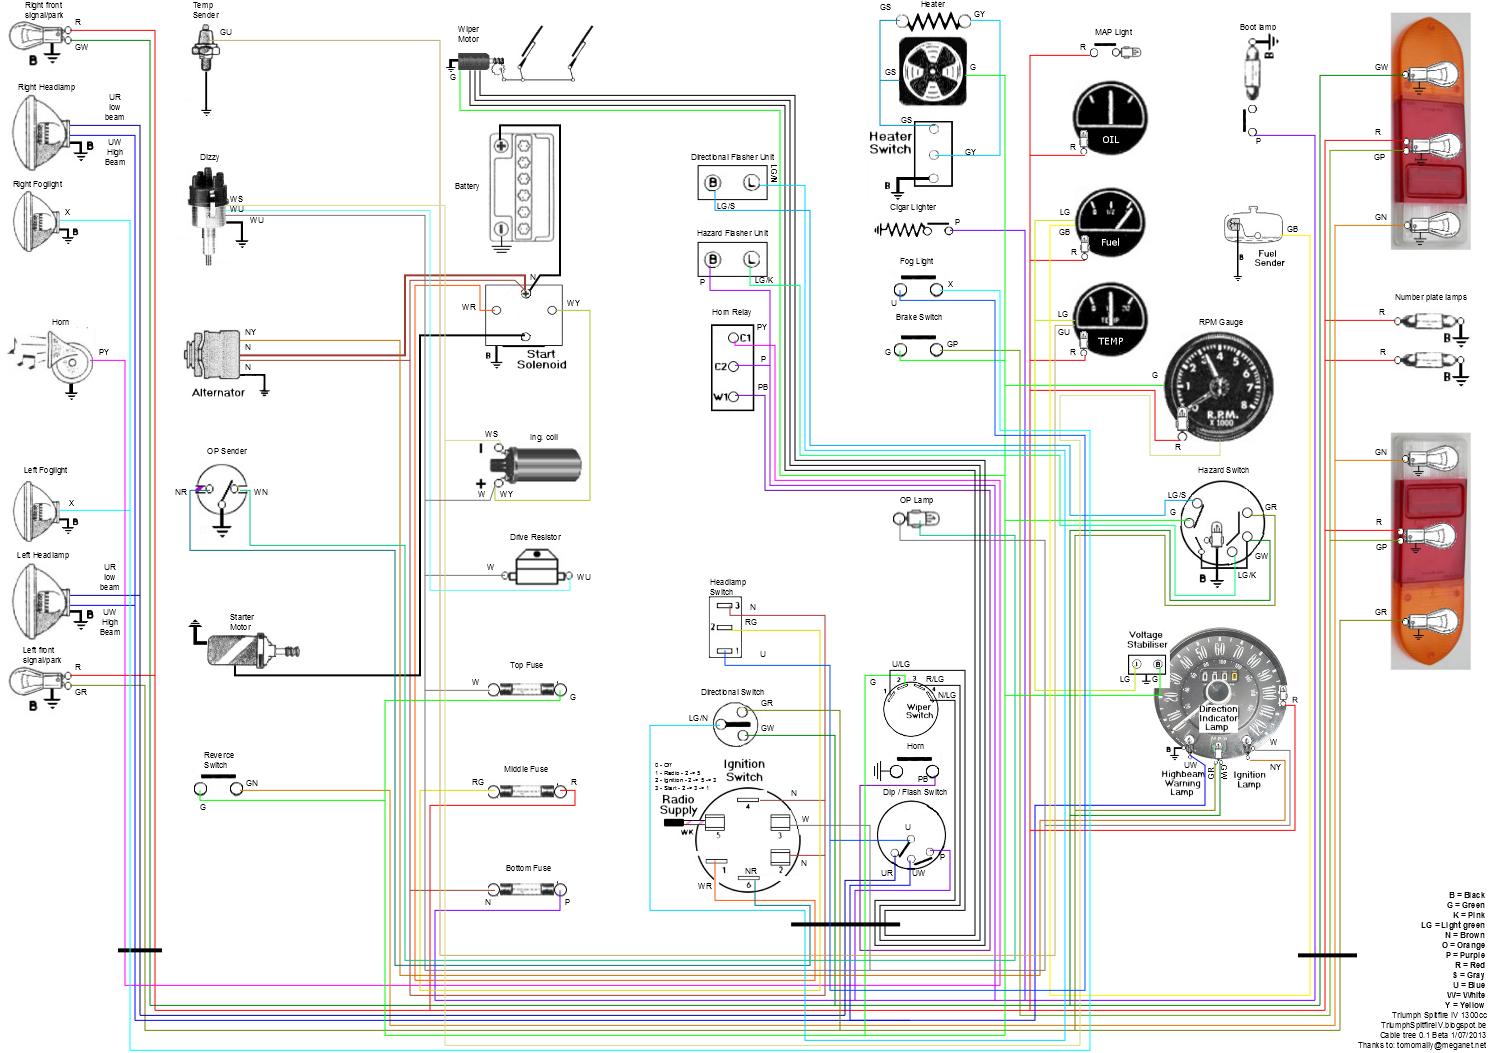 spitfire wiring diagram wiring diagram img color wiring diagram for 1977 triumph spitfire wiring diagram expert [ 1489 x 1053 Pixel ]